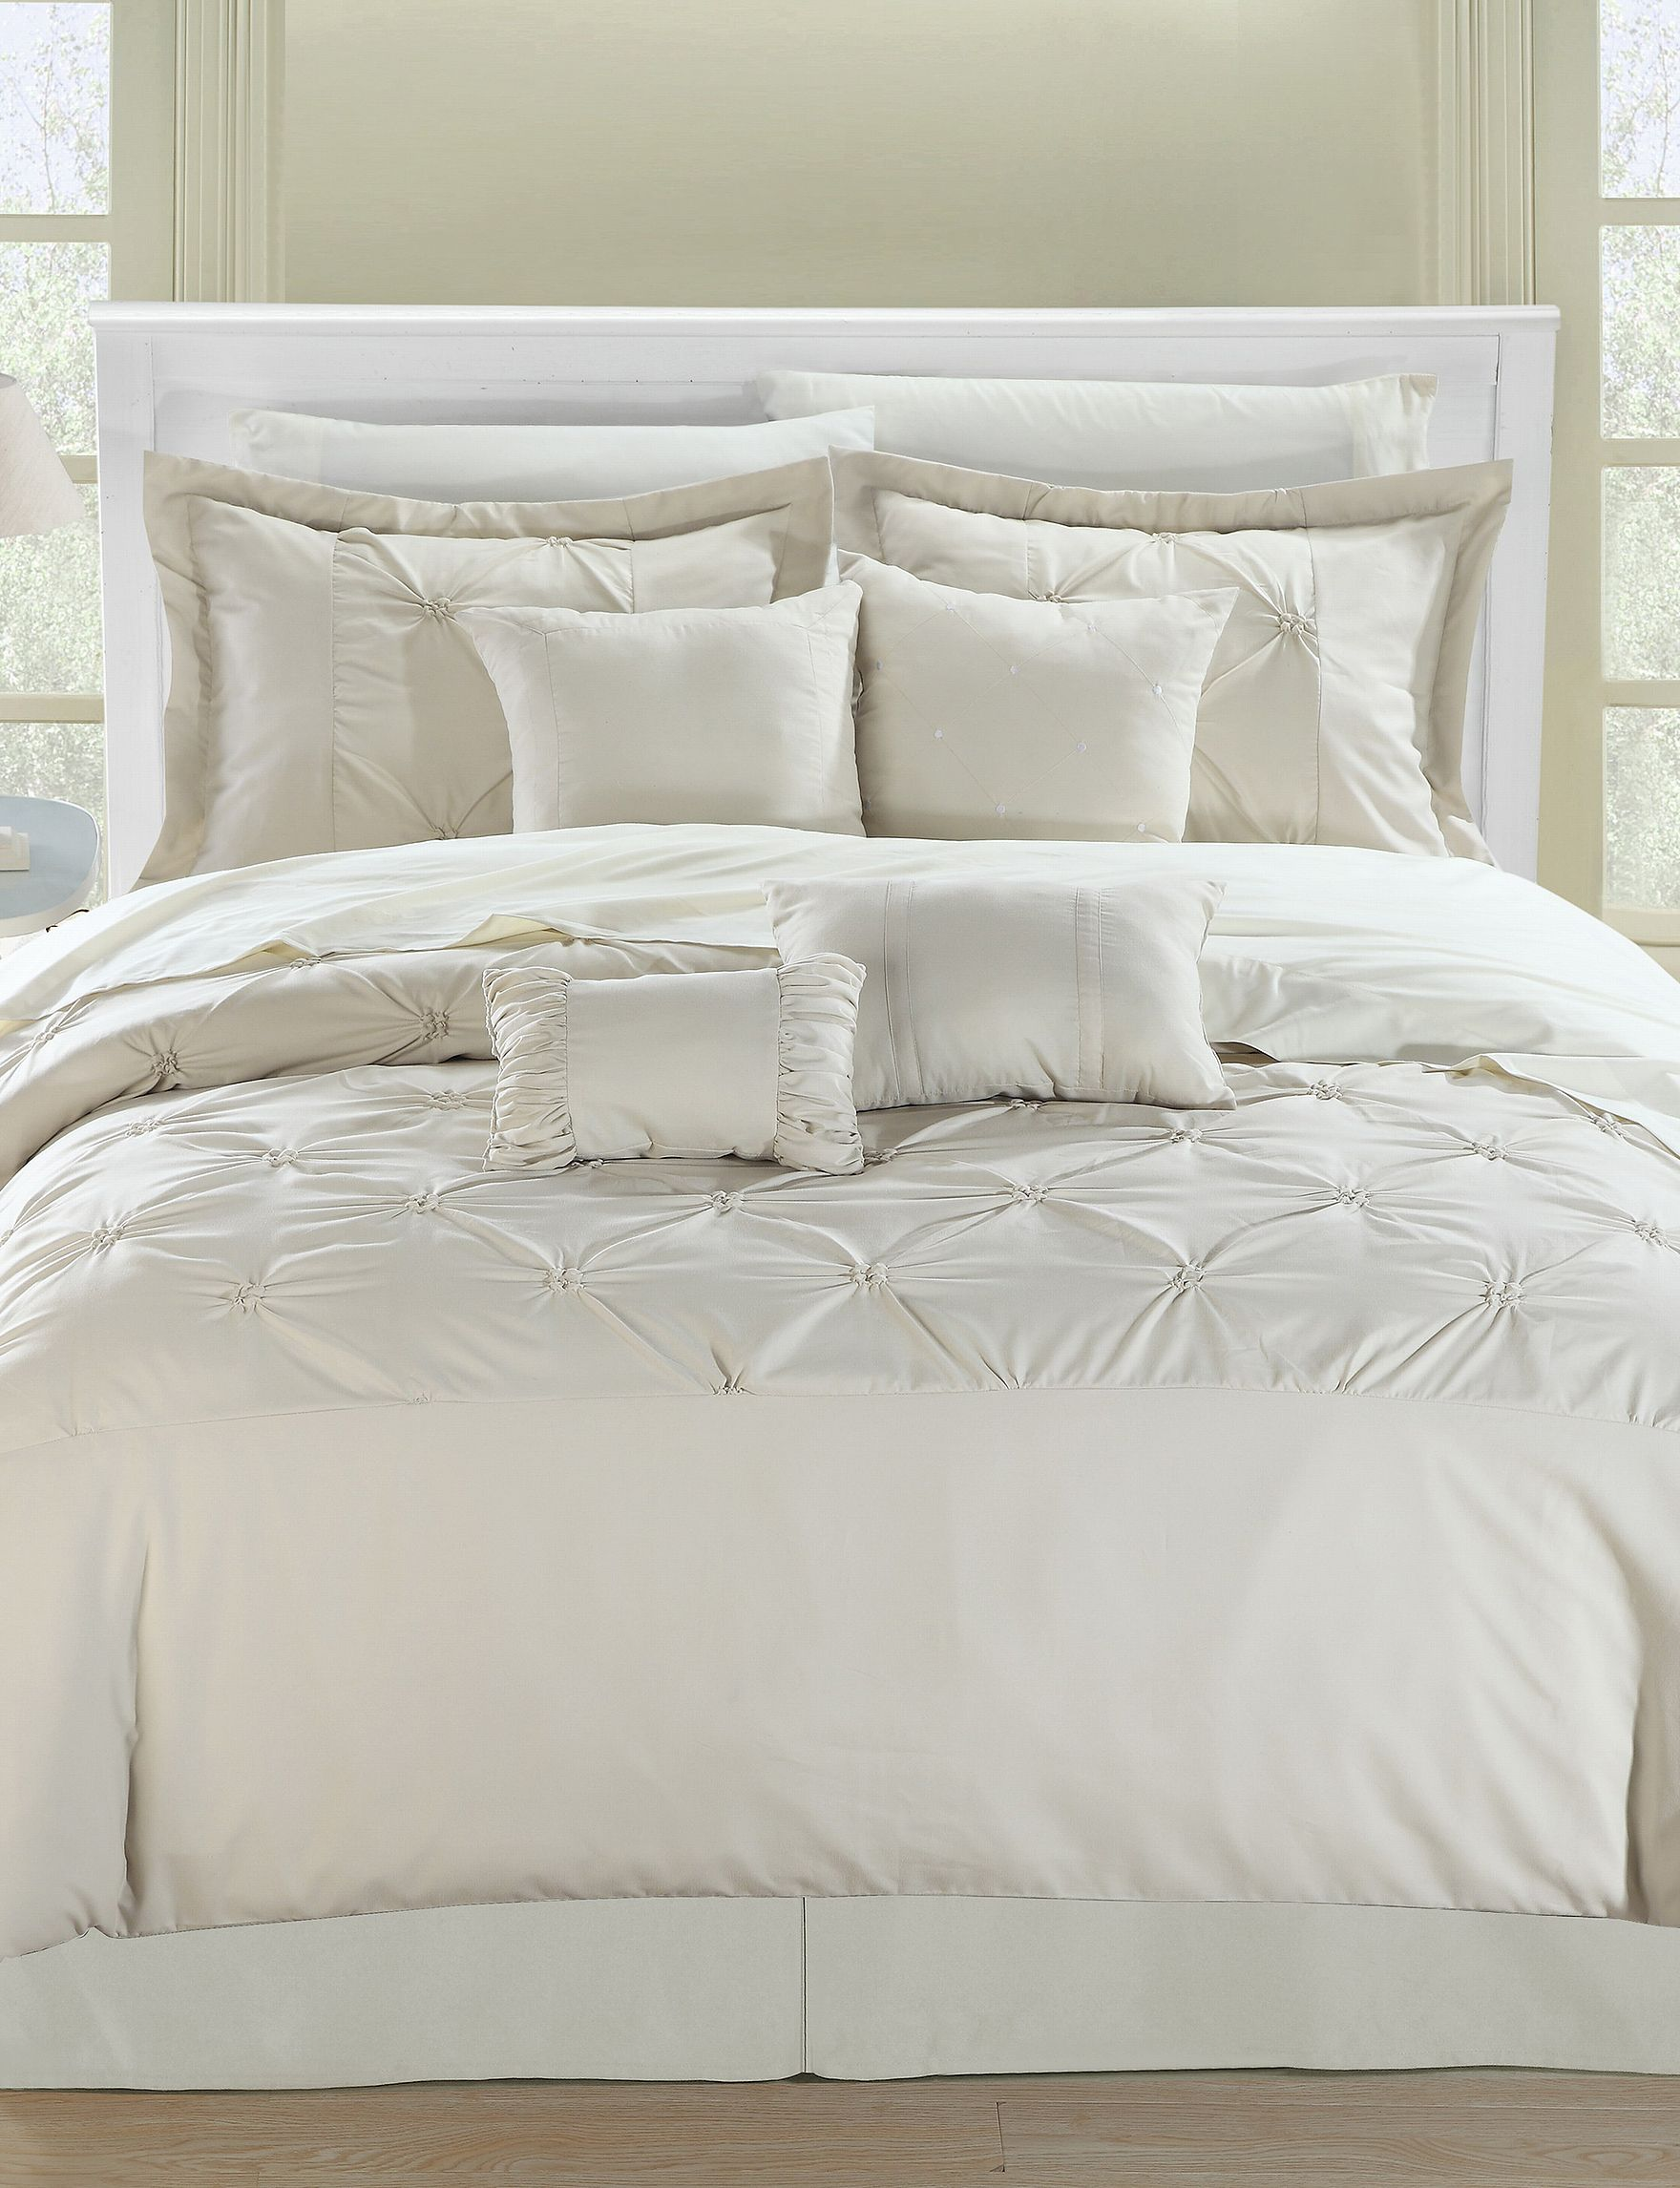 Chic Home Design 8-pc. Vermont Beige Brushed Microfiber Comforter ...